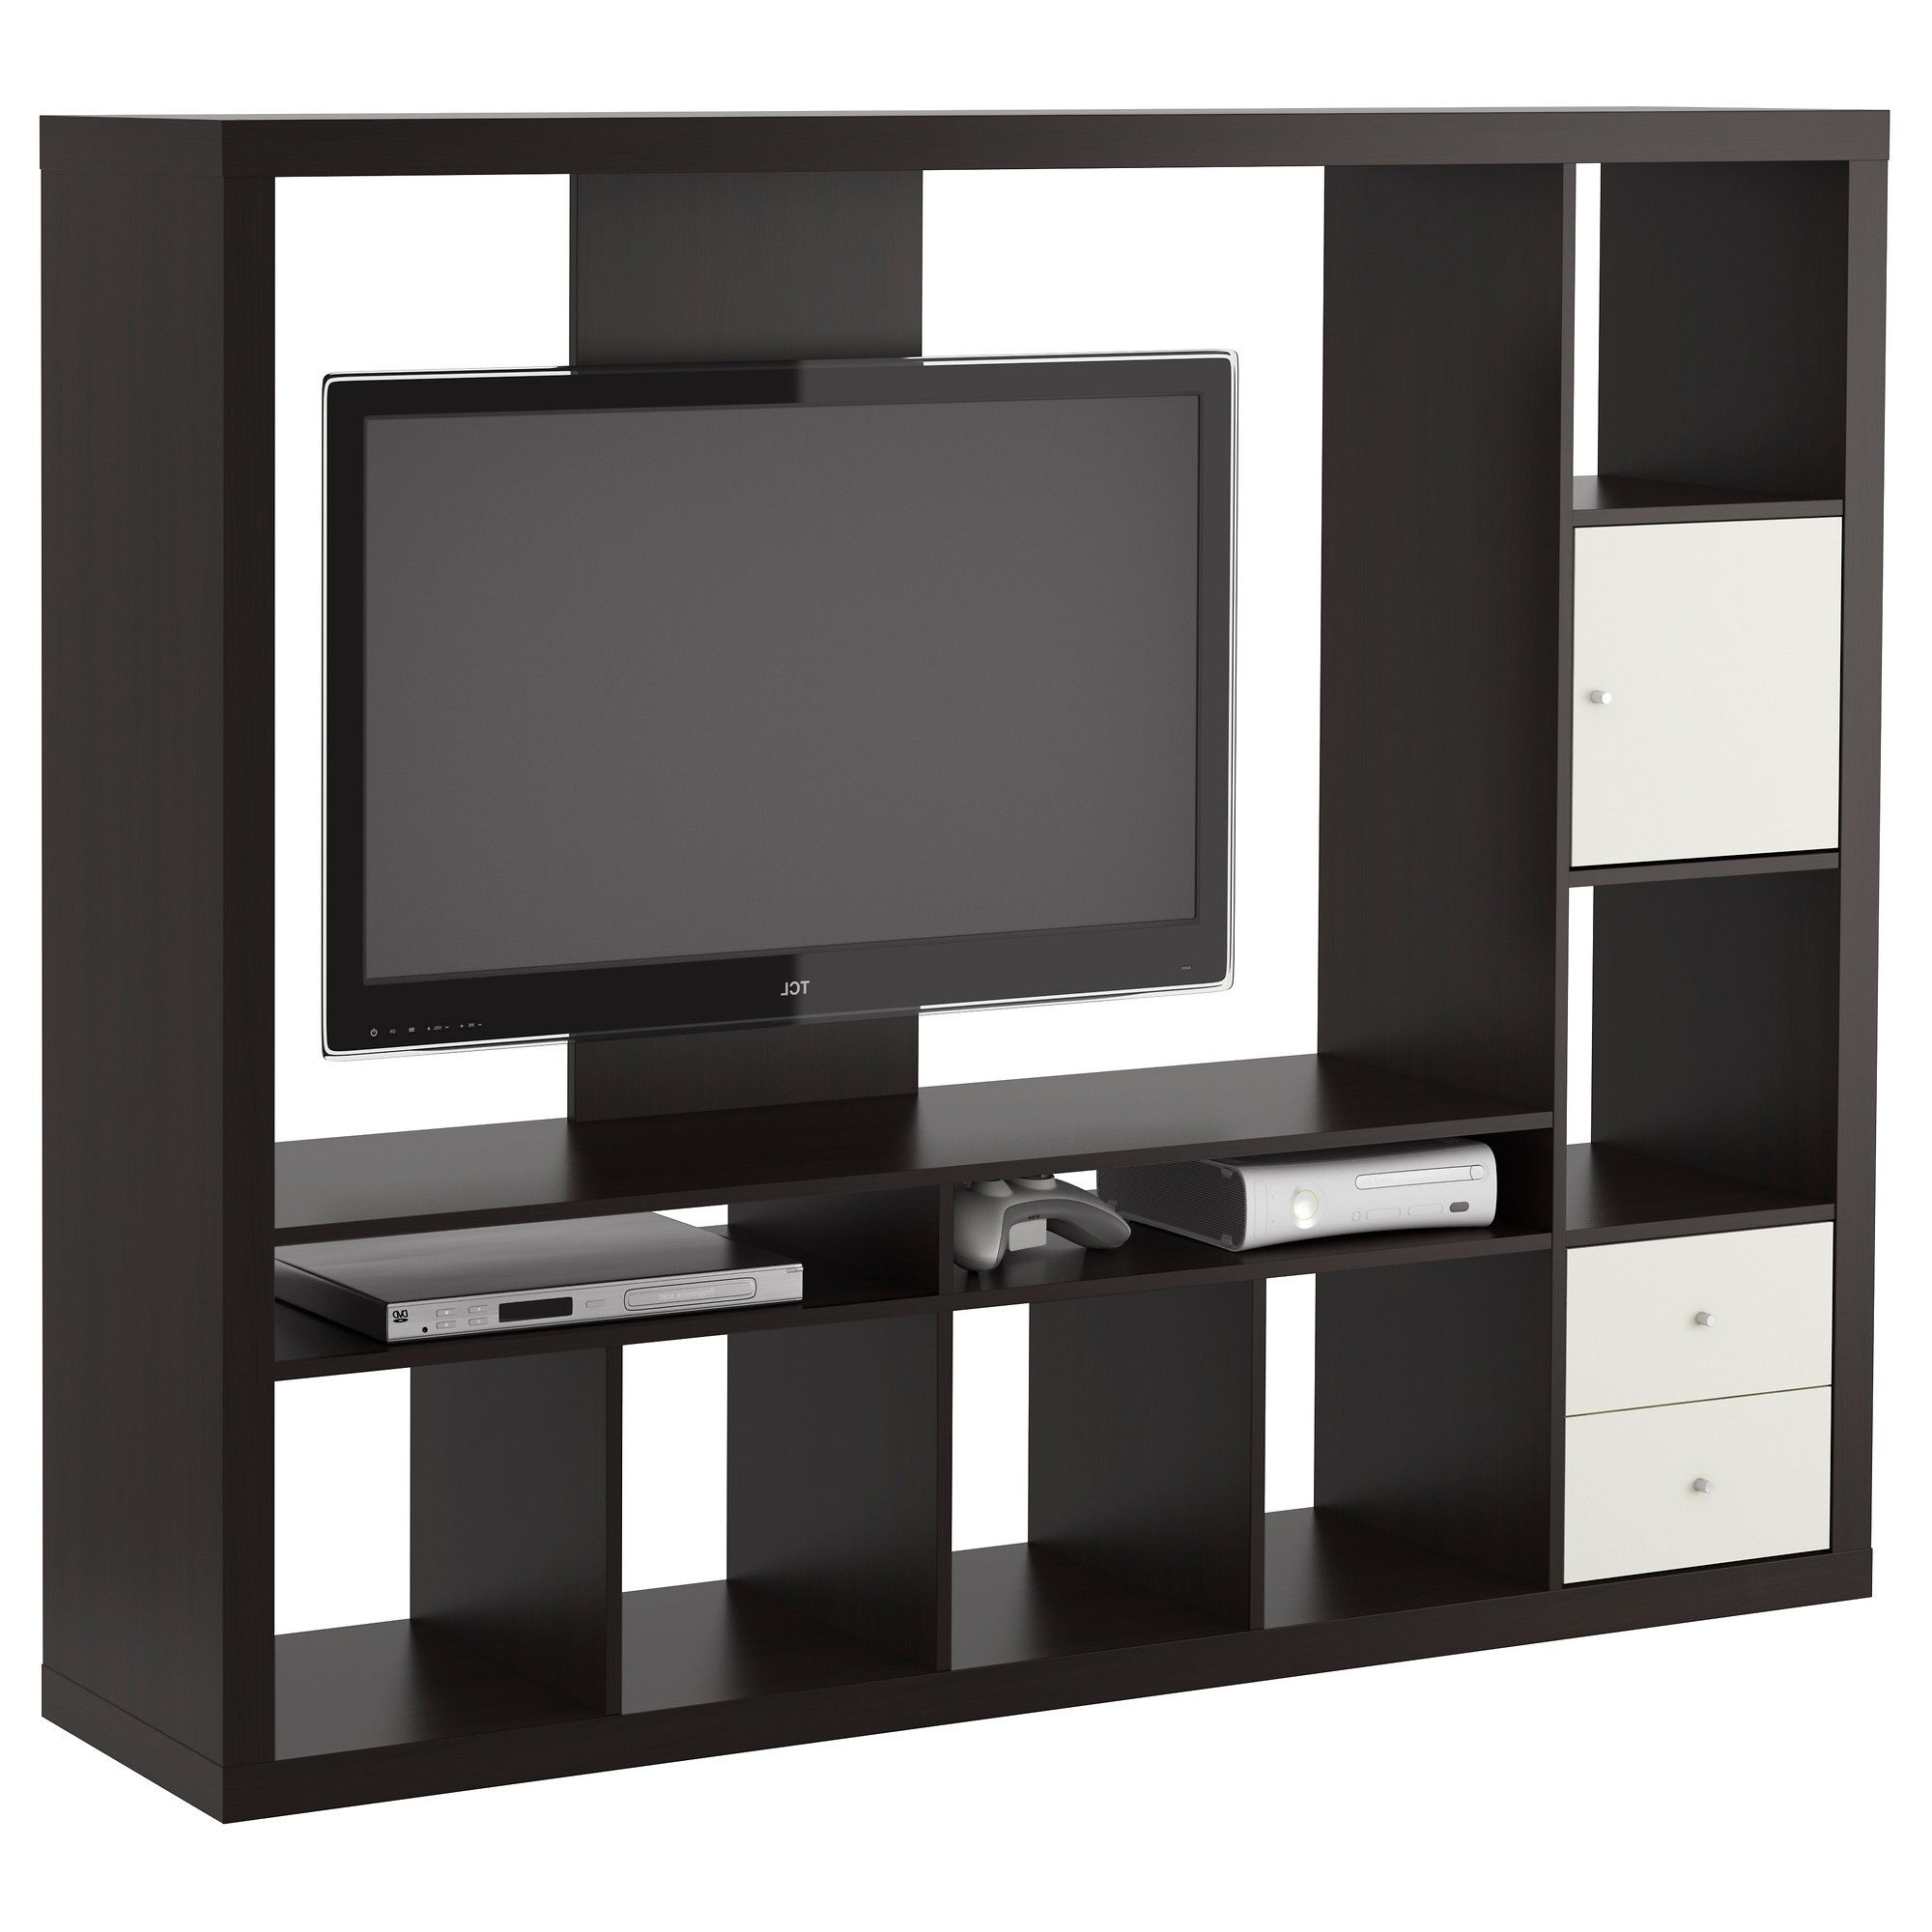 Black Polished Solid Wood Tv Cabinet With Several Open Shelves And Regarding Widely Used Black Tv Cabinets With Drawers (View 6 of 20)